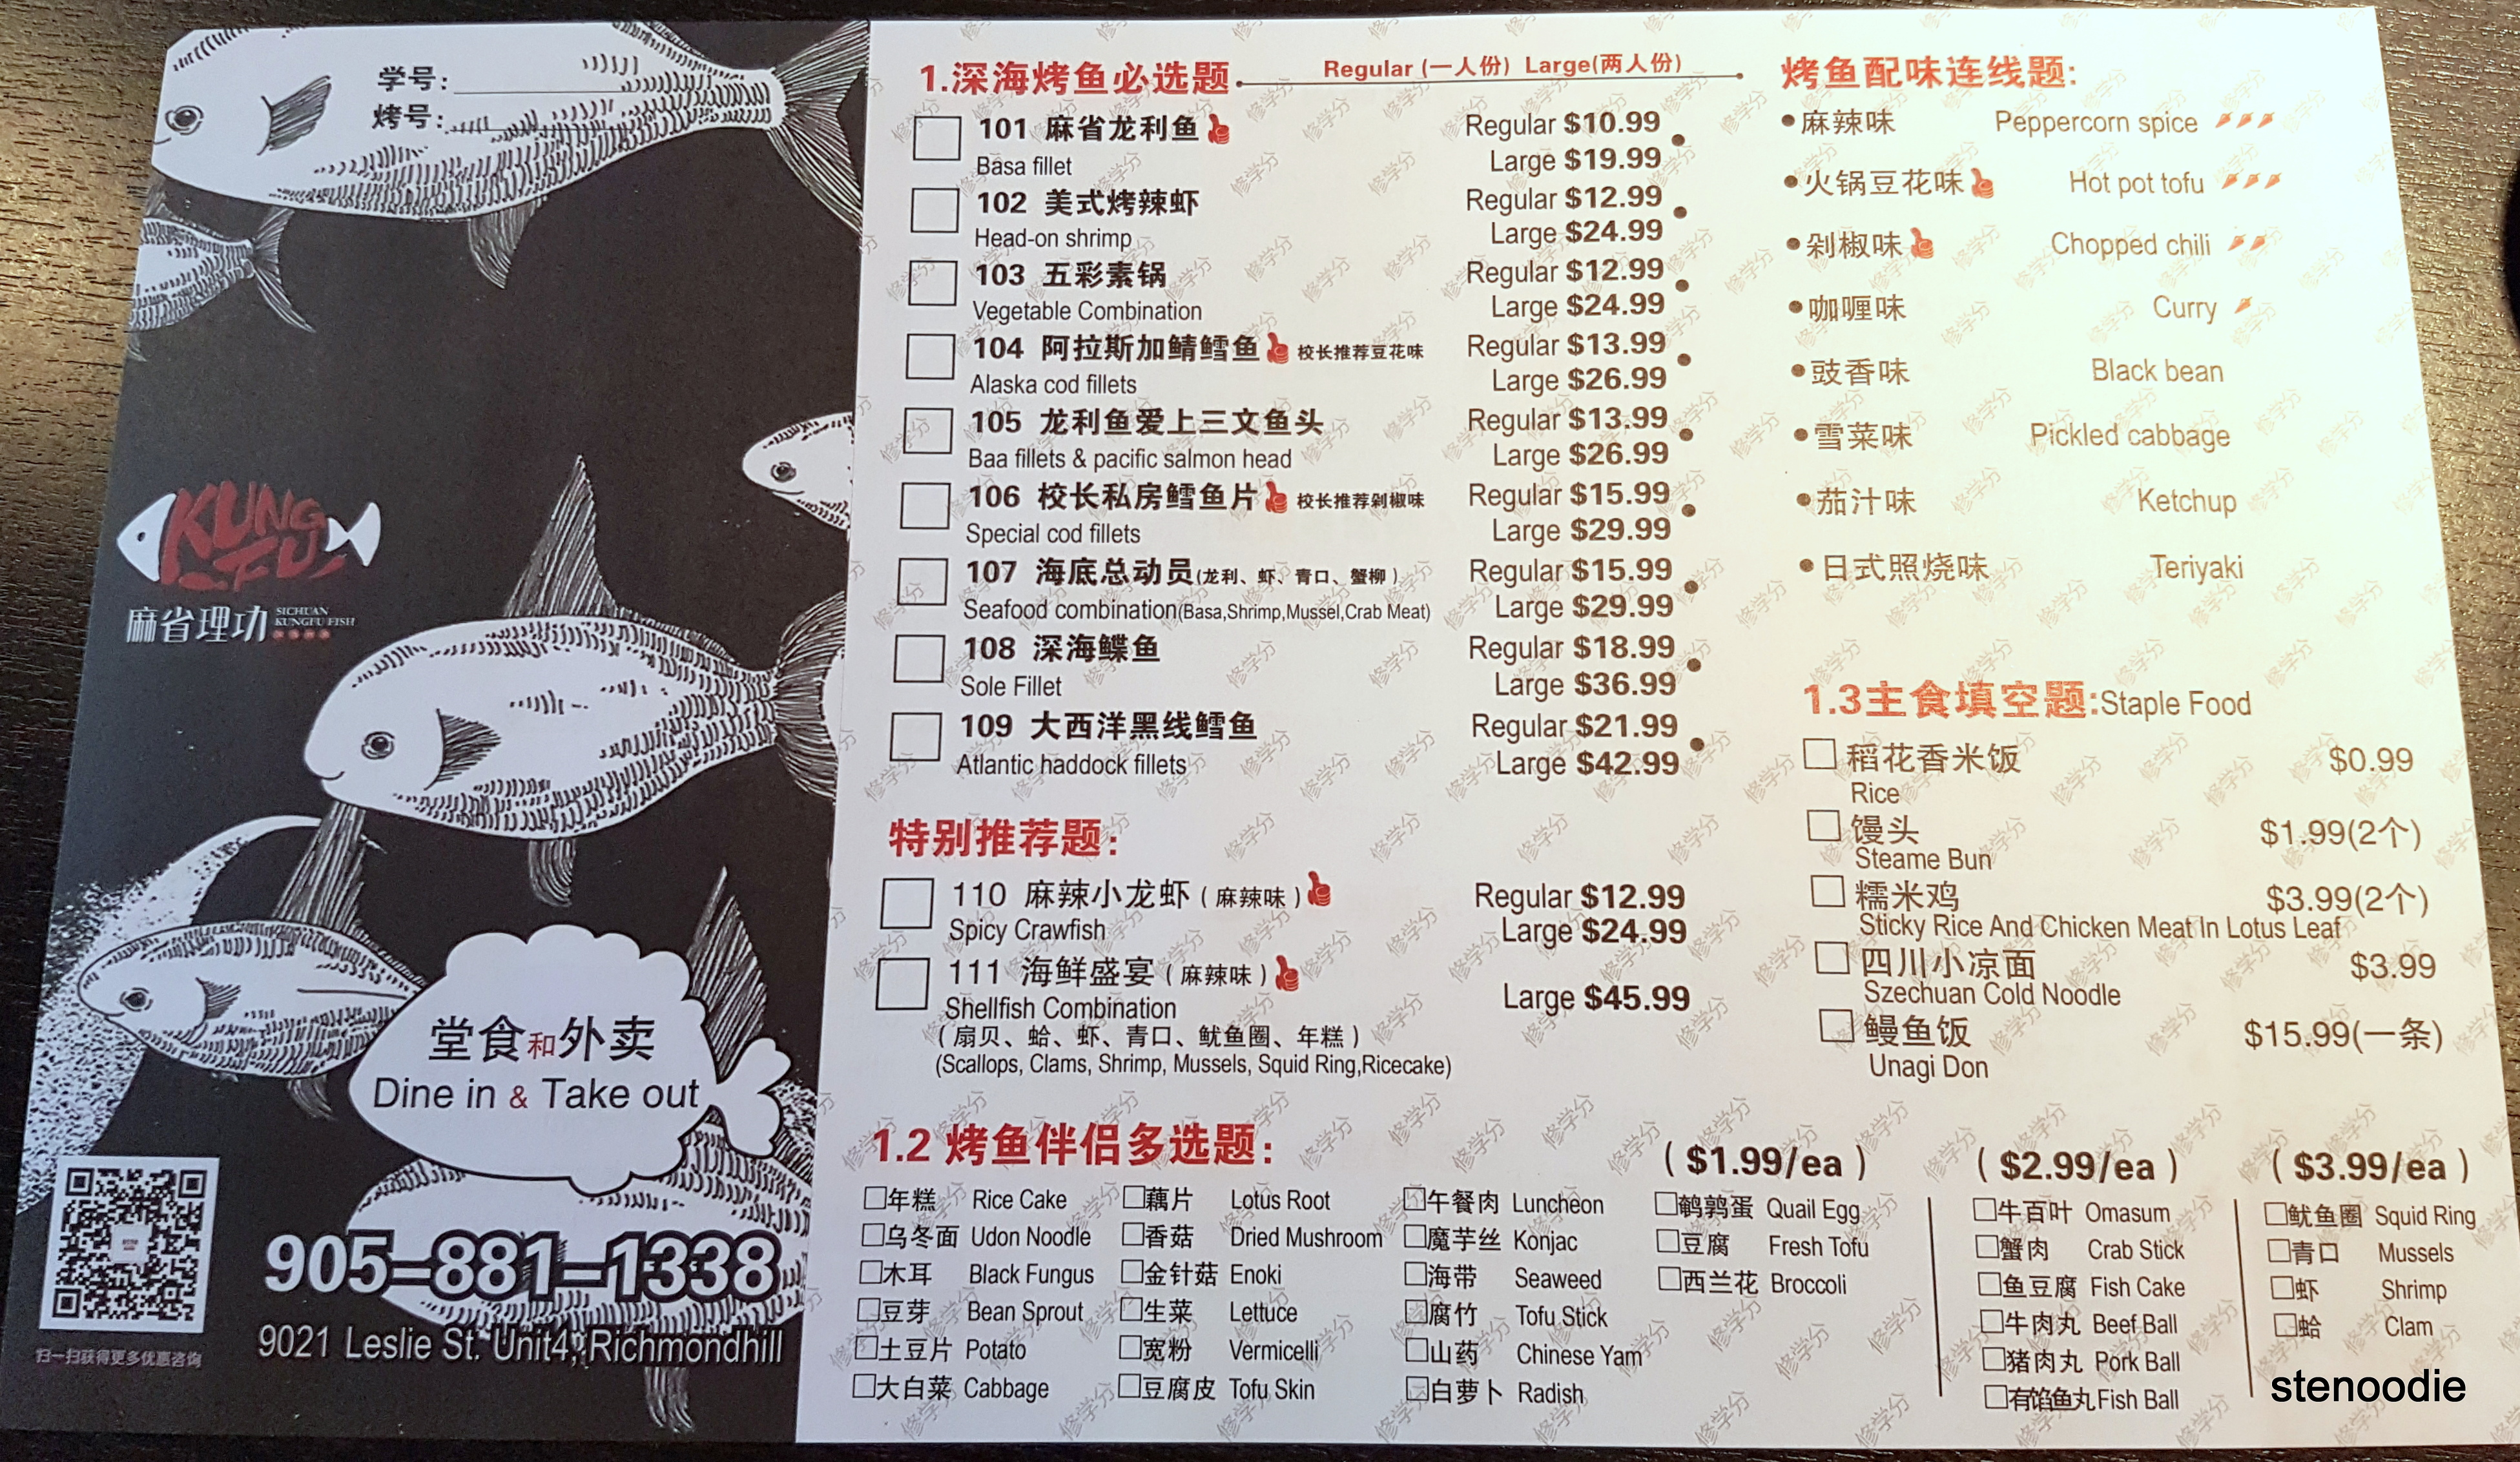 Sichuan Kungfu Fish menu